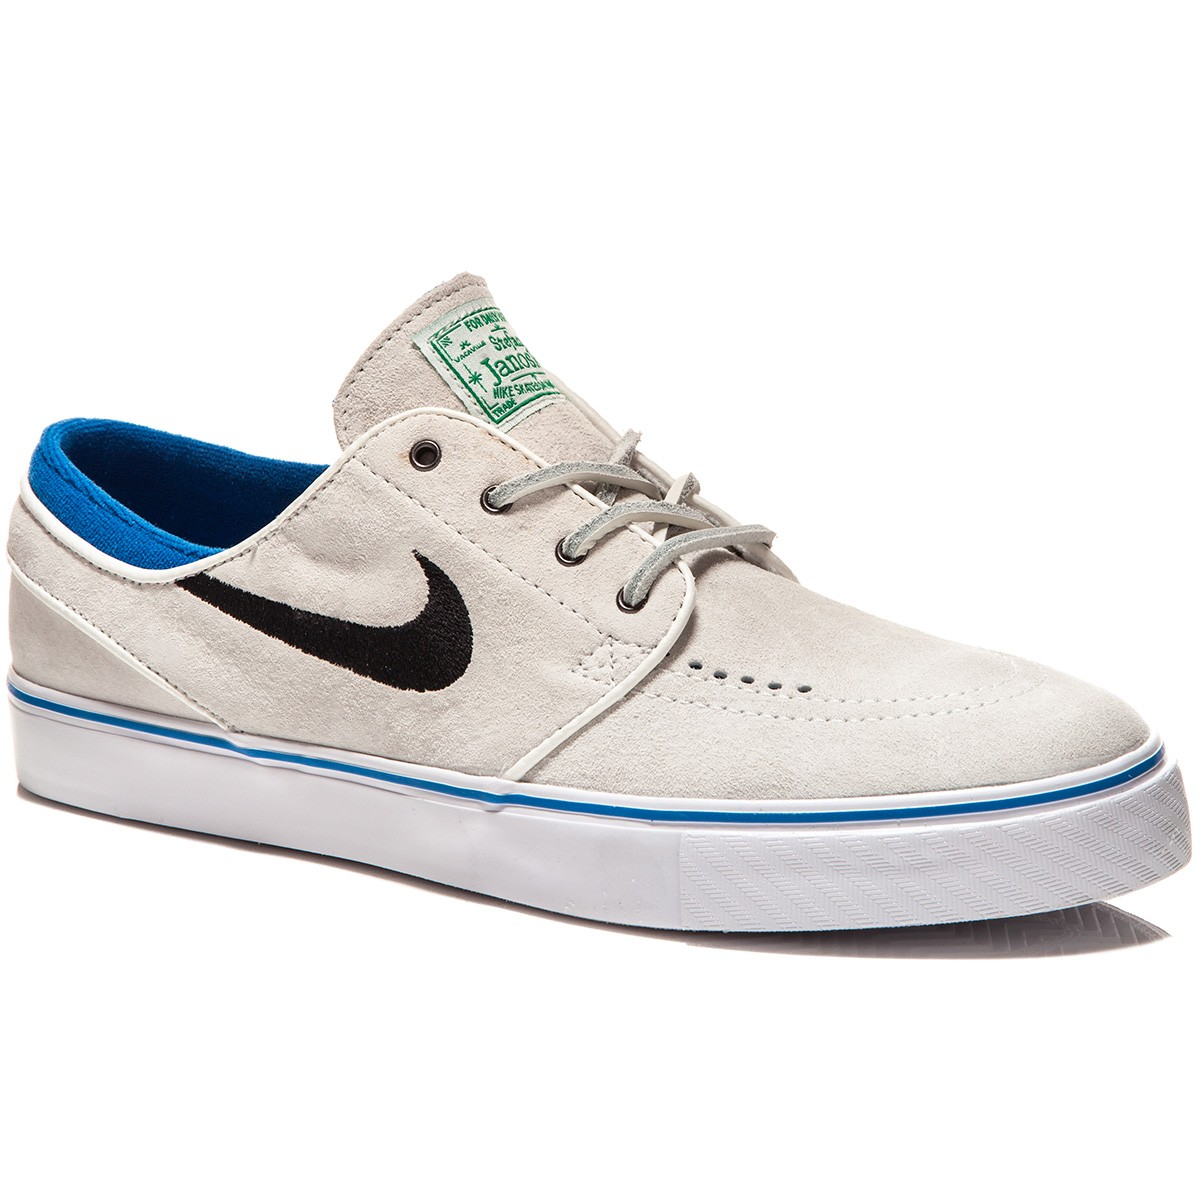 nike sb zoom stefan janoski amsterdam qs shoes. Black Bedroom Furniture Sets. Home Design Ideas